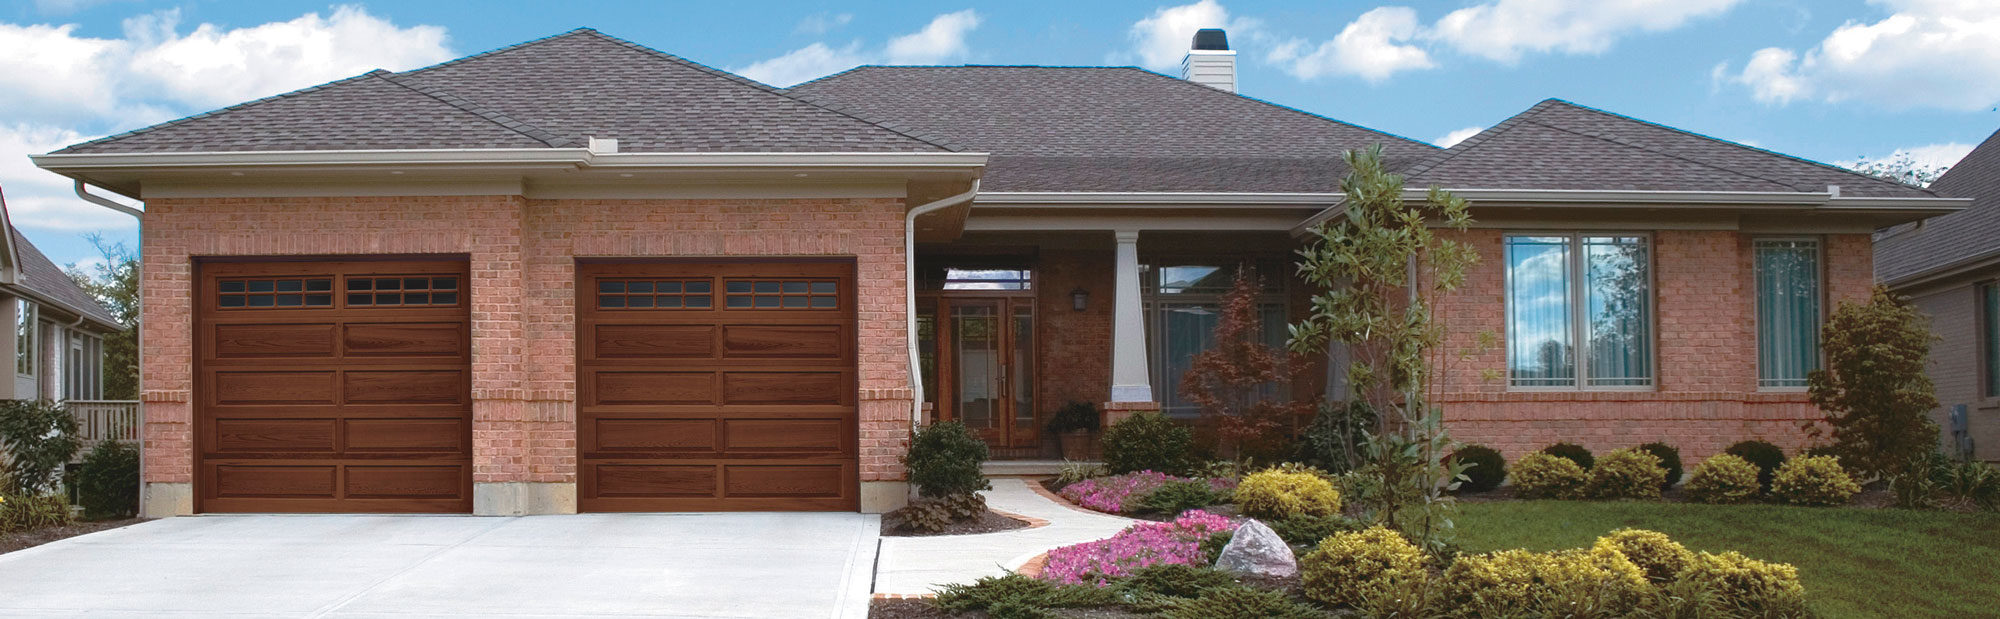 24 7 Garage Door Repair In Madison Wi Local Garage Service